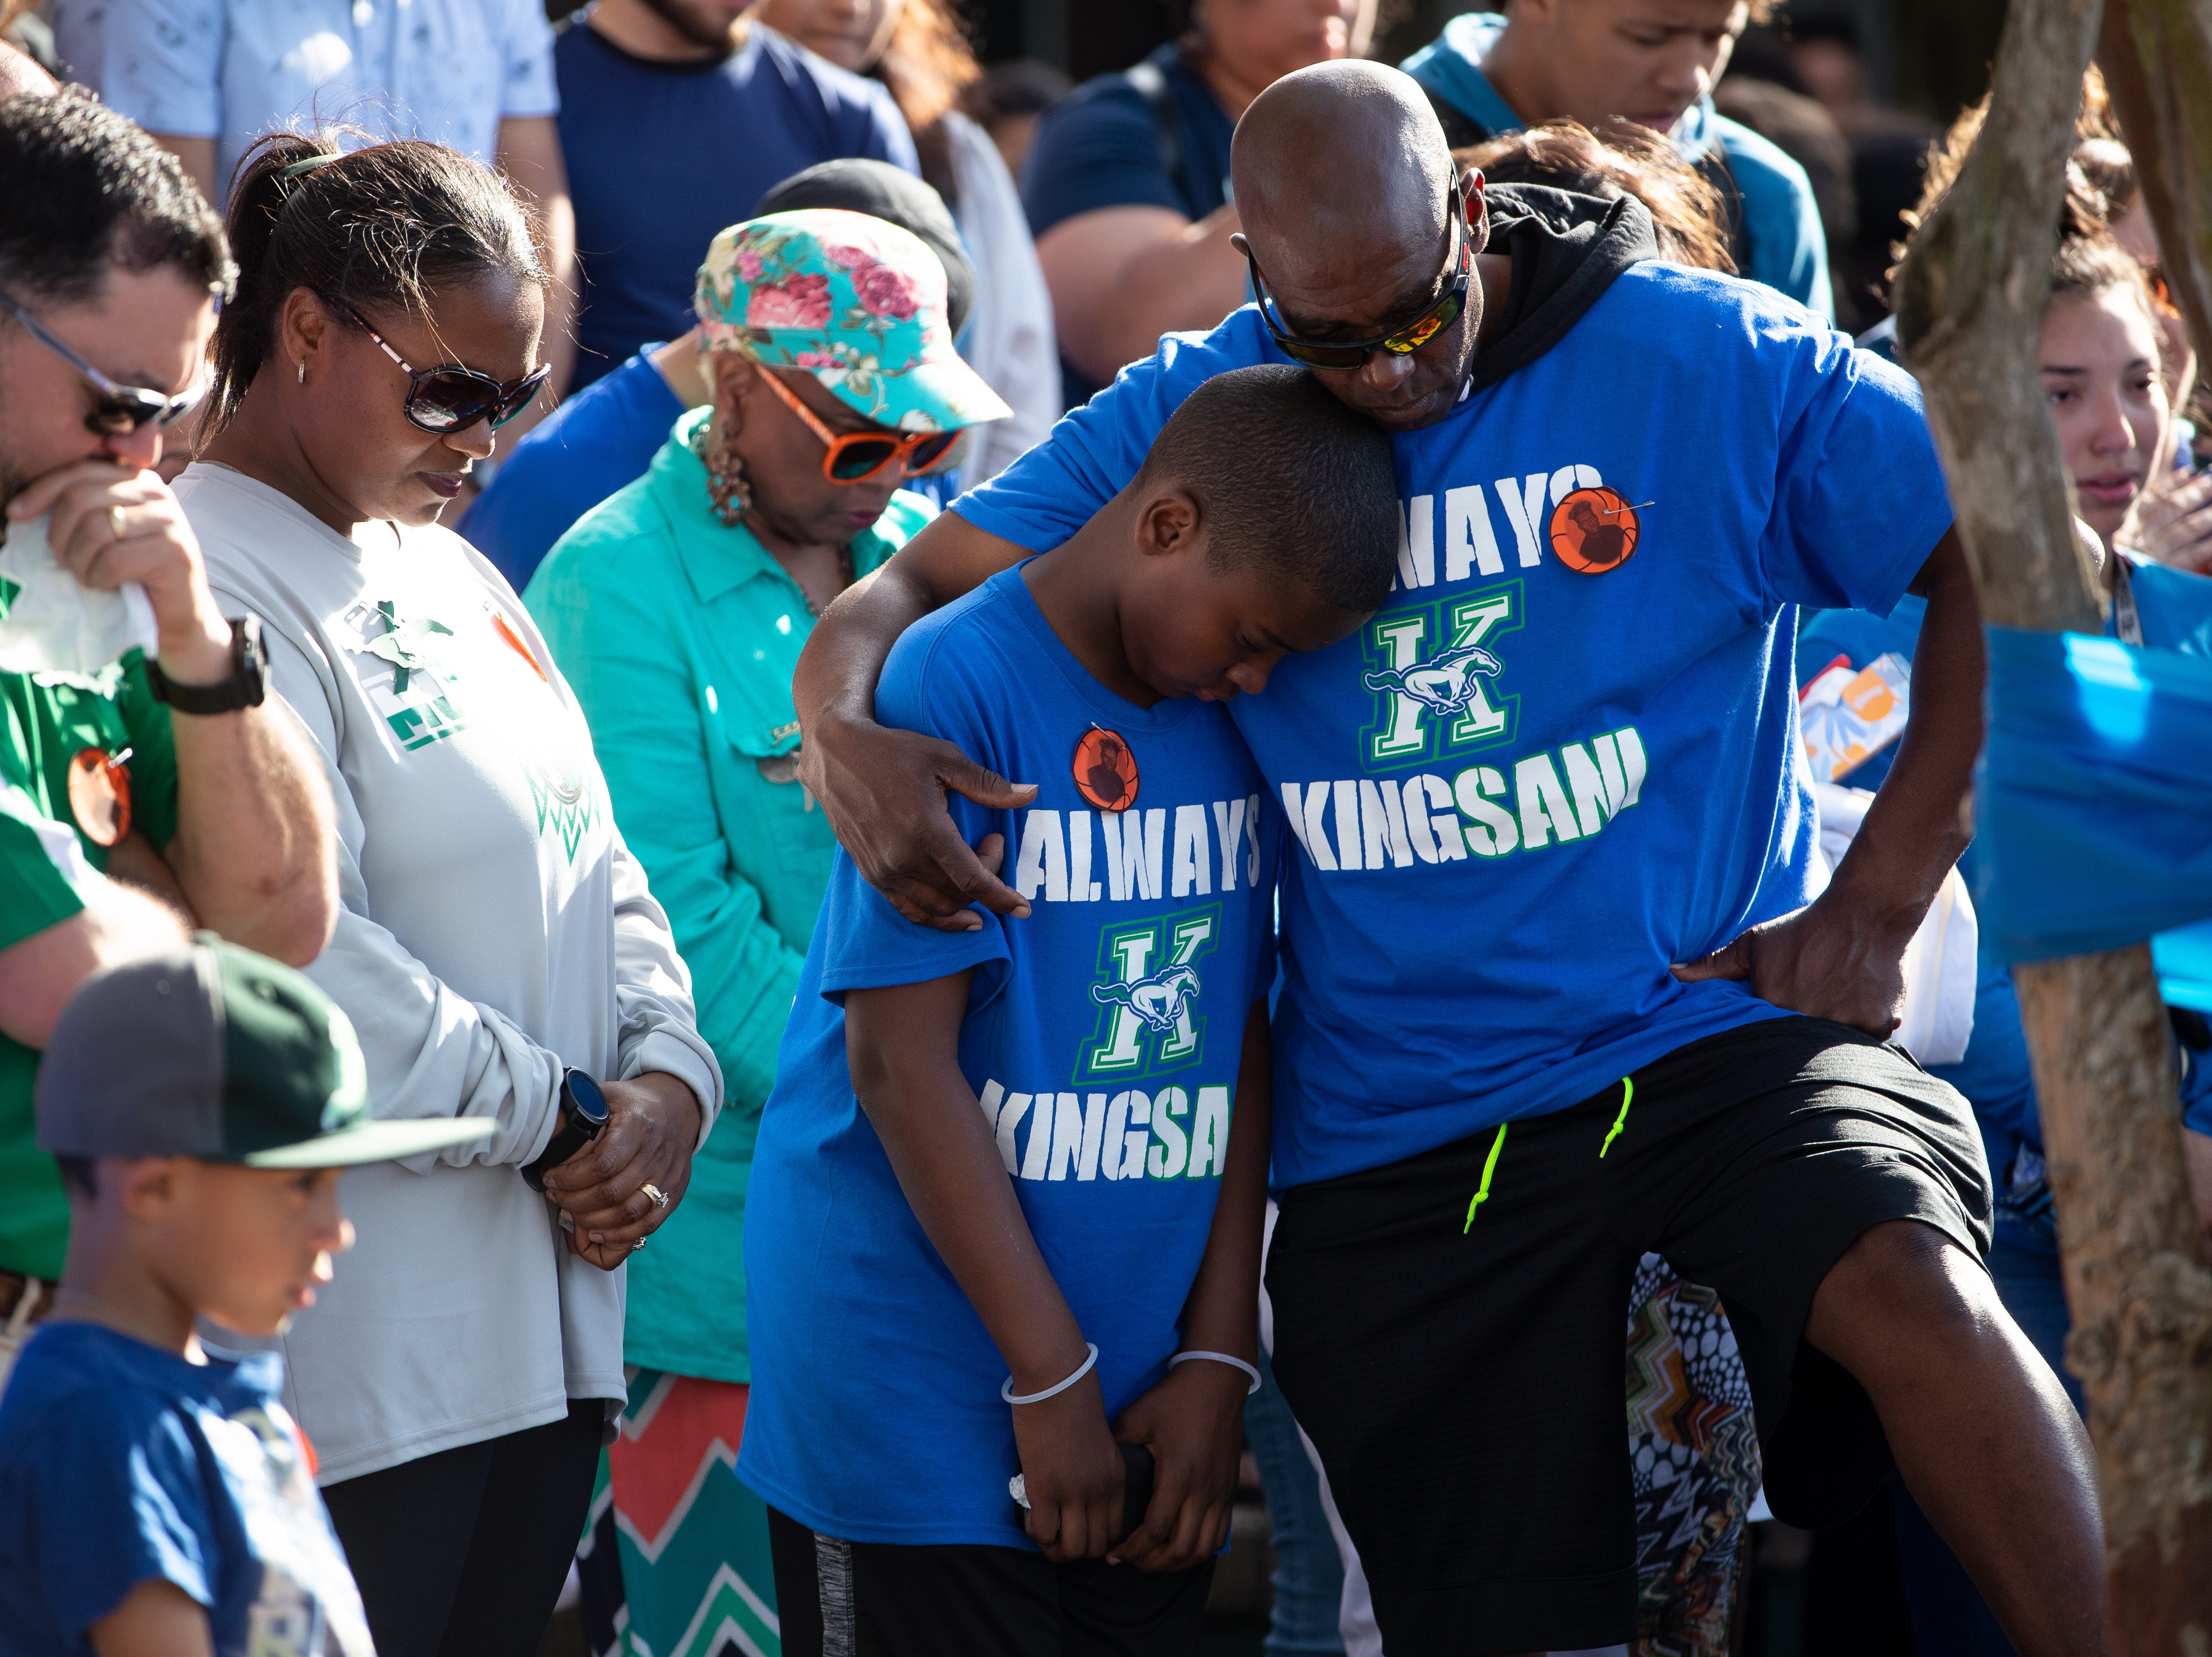 King High School senior Je'Sani Smith's father Terrance Denson and younger brother Terrance embrace during a vigil remembering Je'Sani on Monday, April 15, 2019. Je'Sani Smith's body was recovered Sunday afternoon near Bob Hall Pier after drowning on Whitecap Beach last week.